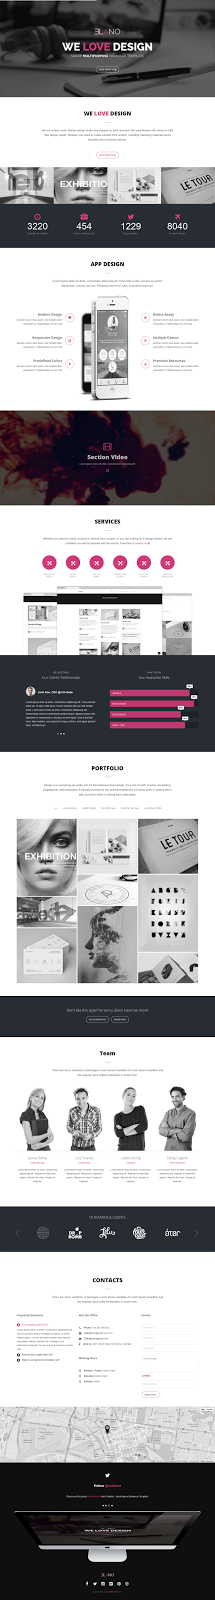 themeforest joomla theme